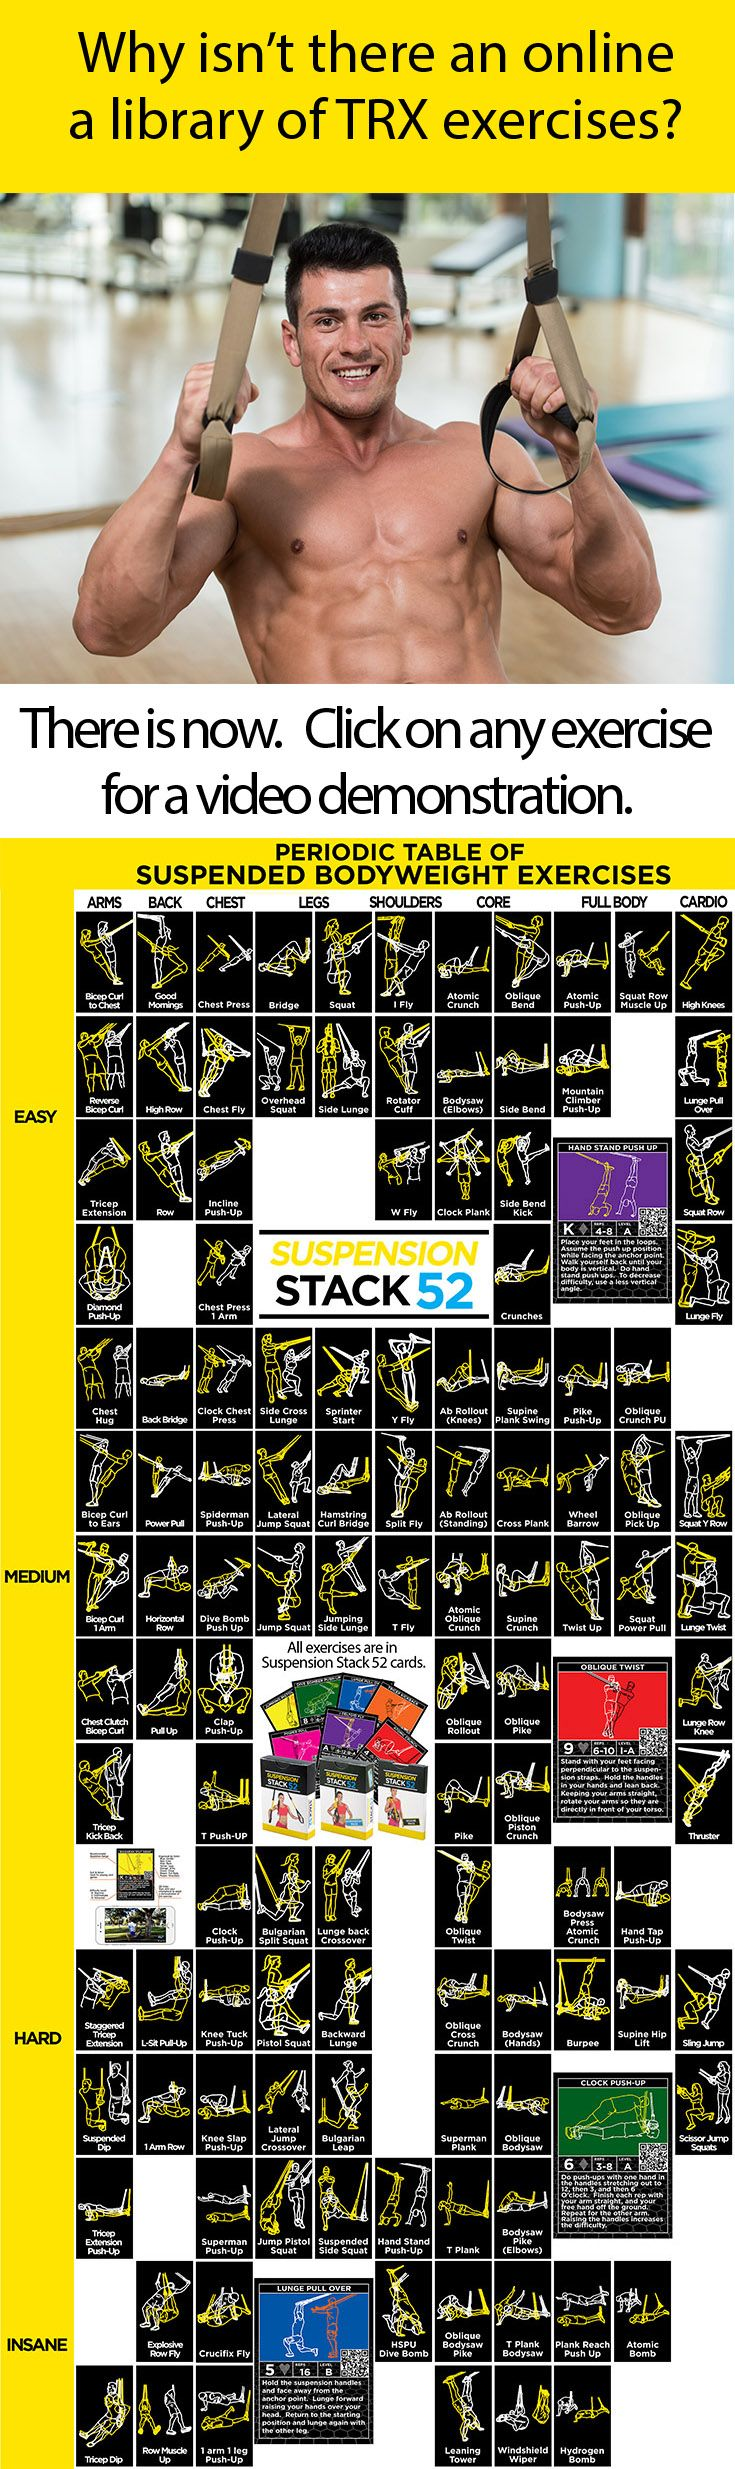 This Periodic Table of Suspension Exercises lists 119 TRX exercises arranged by muscle group and difficulty.  Click on any exercise for a video demonstration.  Enjoy!